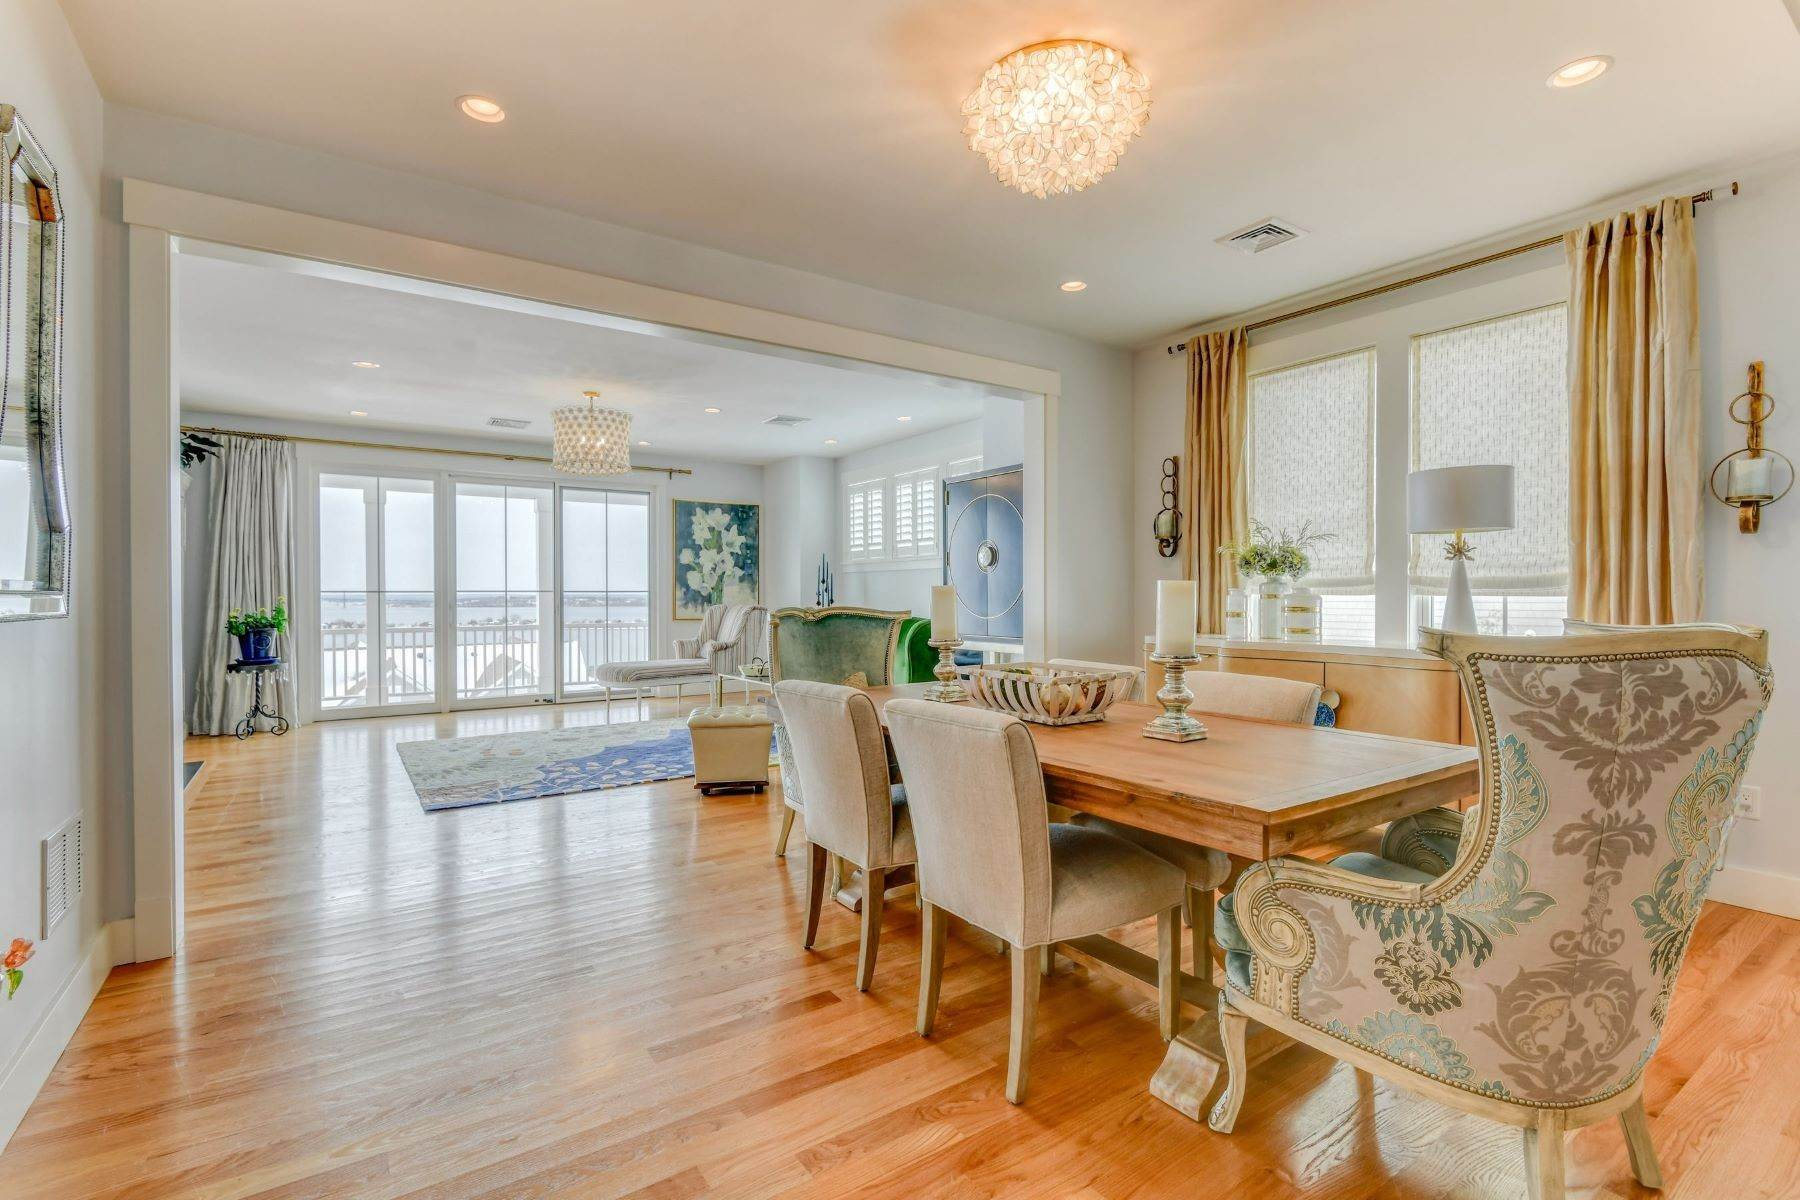 10. Condominiums for Sale at Immaculate Townhome at The Villages 41 Yardarm Drive Tiverton, Rhode Island 02878 United States